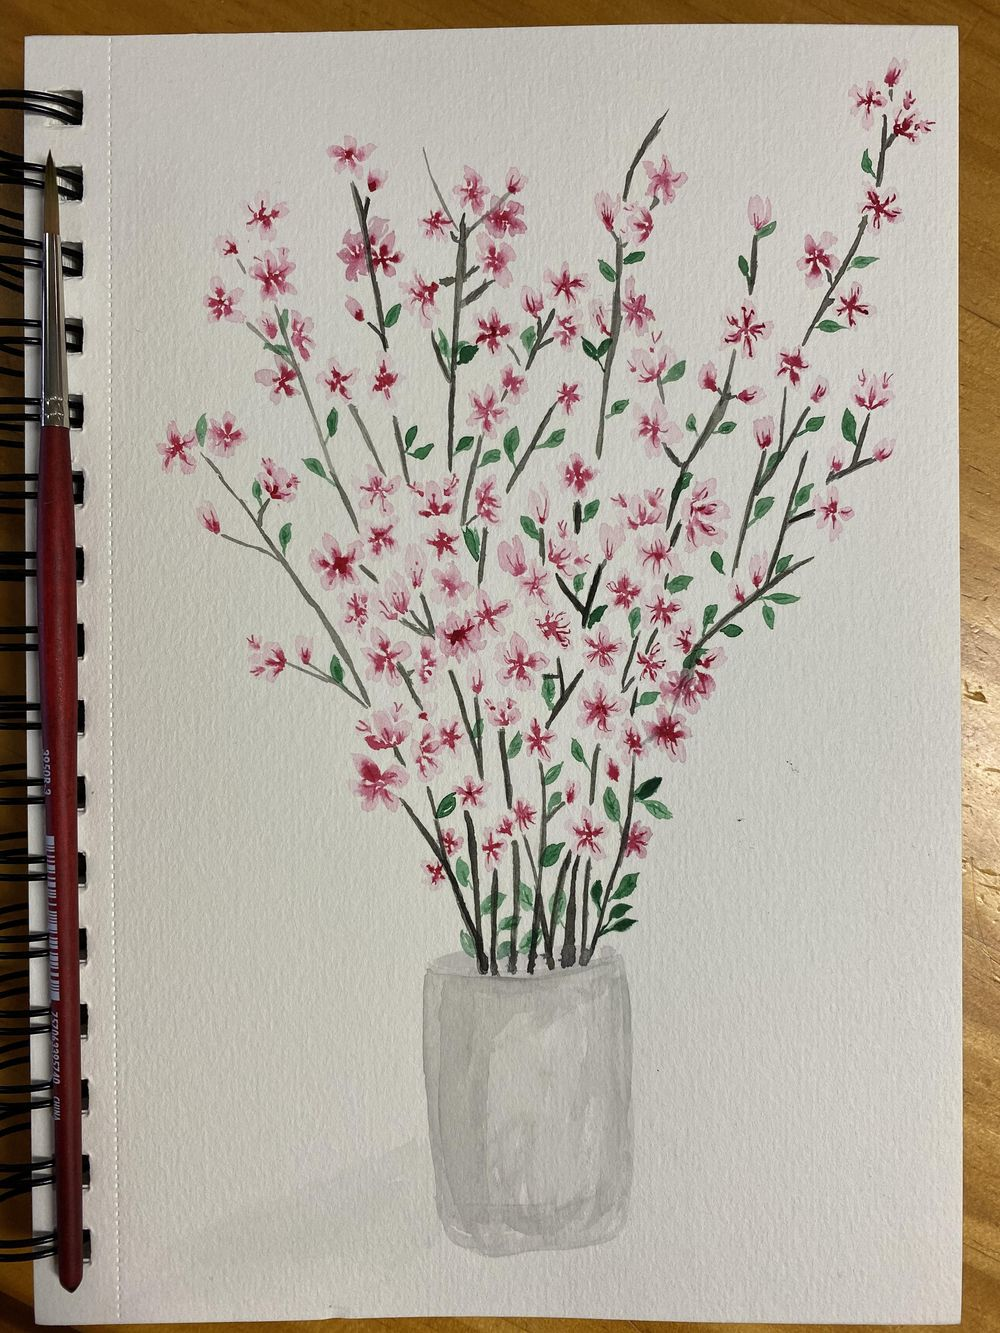 Cherry blossom - image 2 - student project